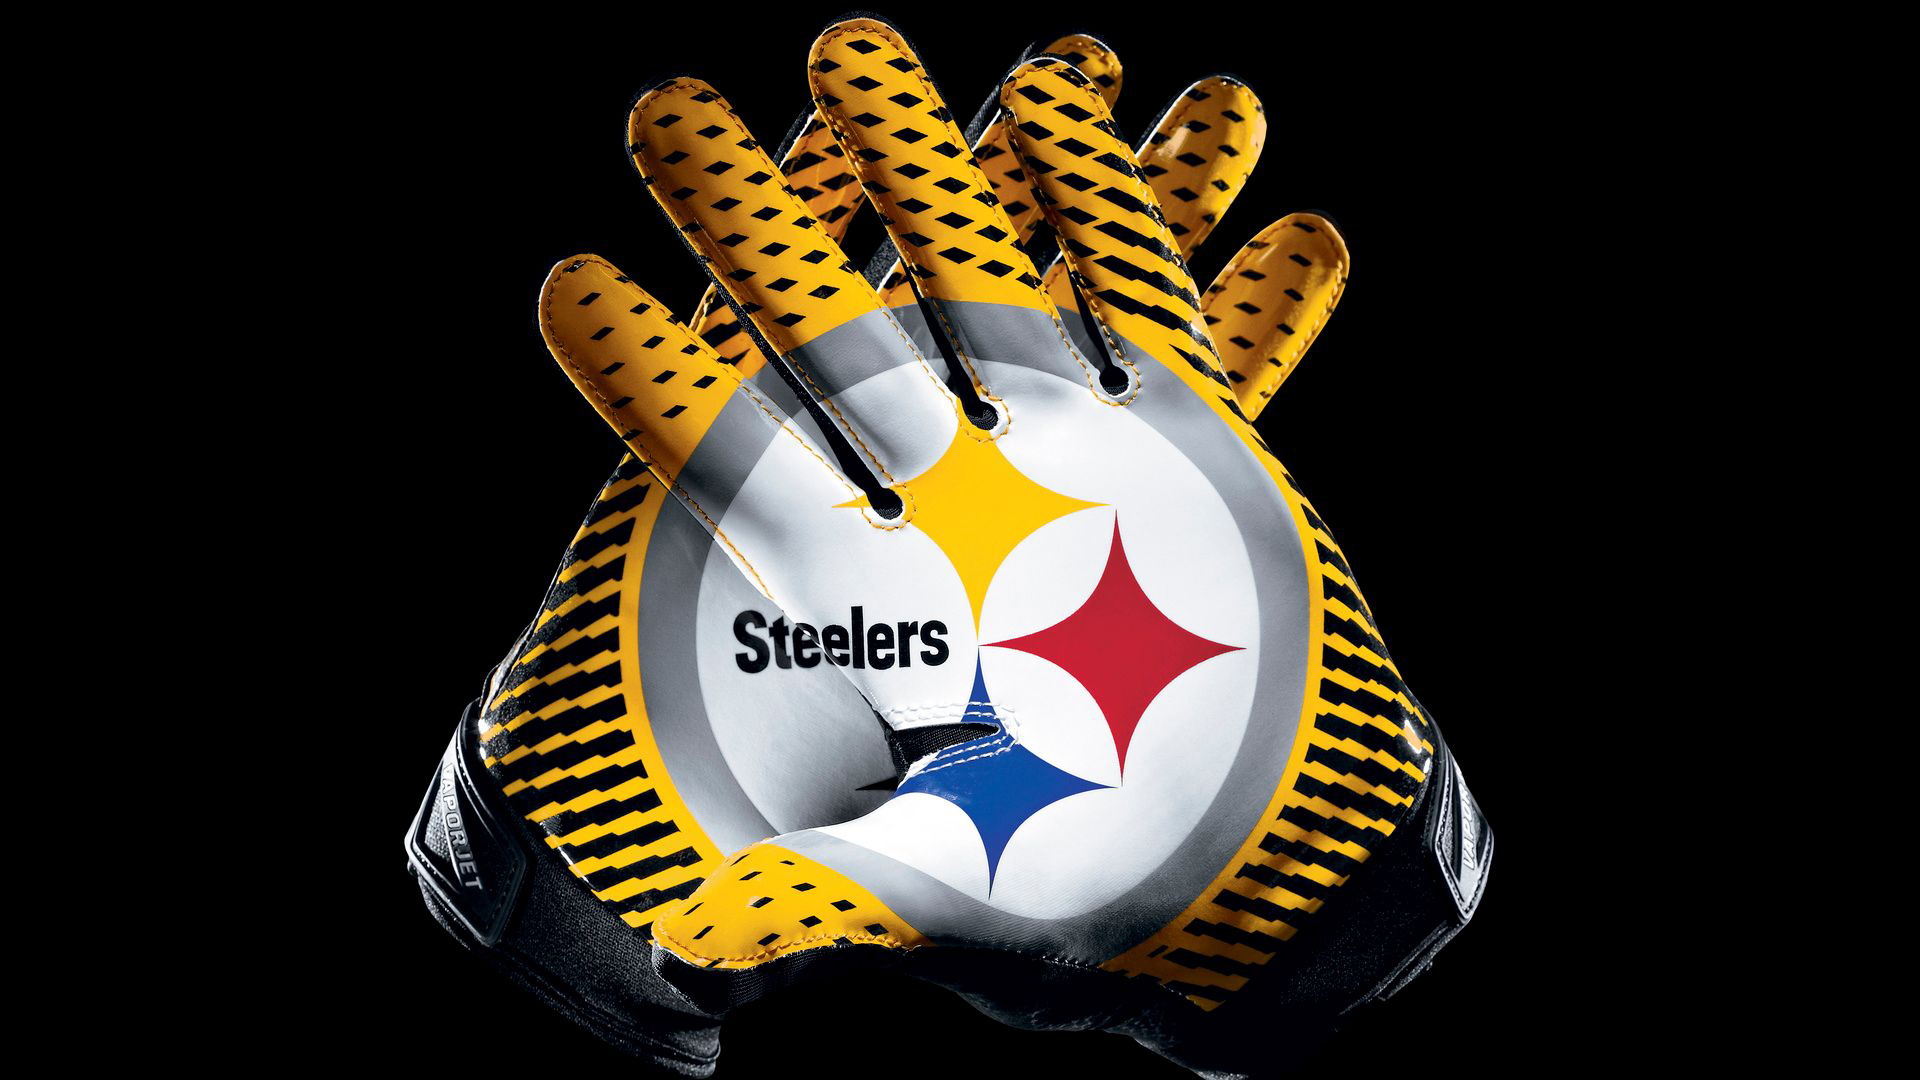 Download Yellow And Black Gloves With Steelers Symbol In Black Background Hd Steelers